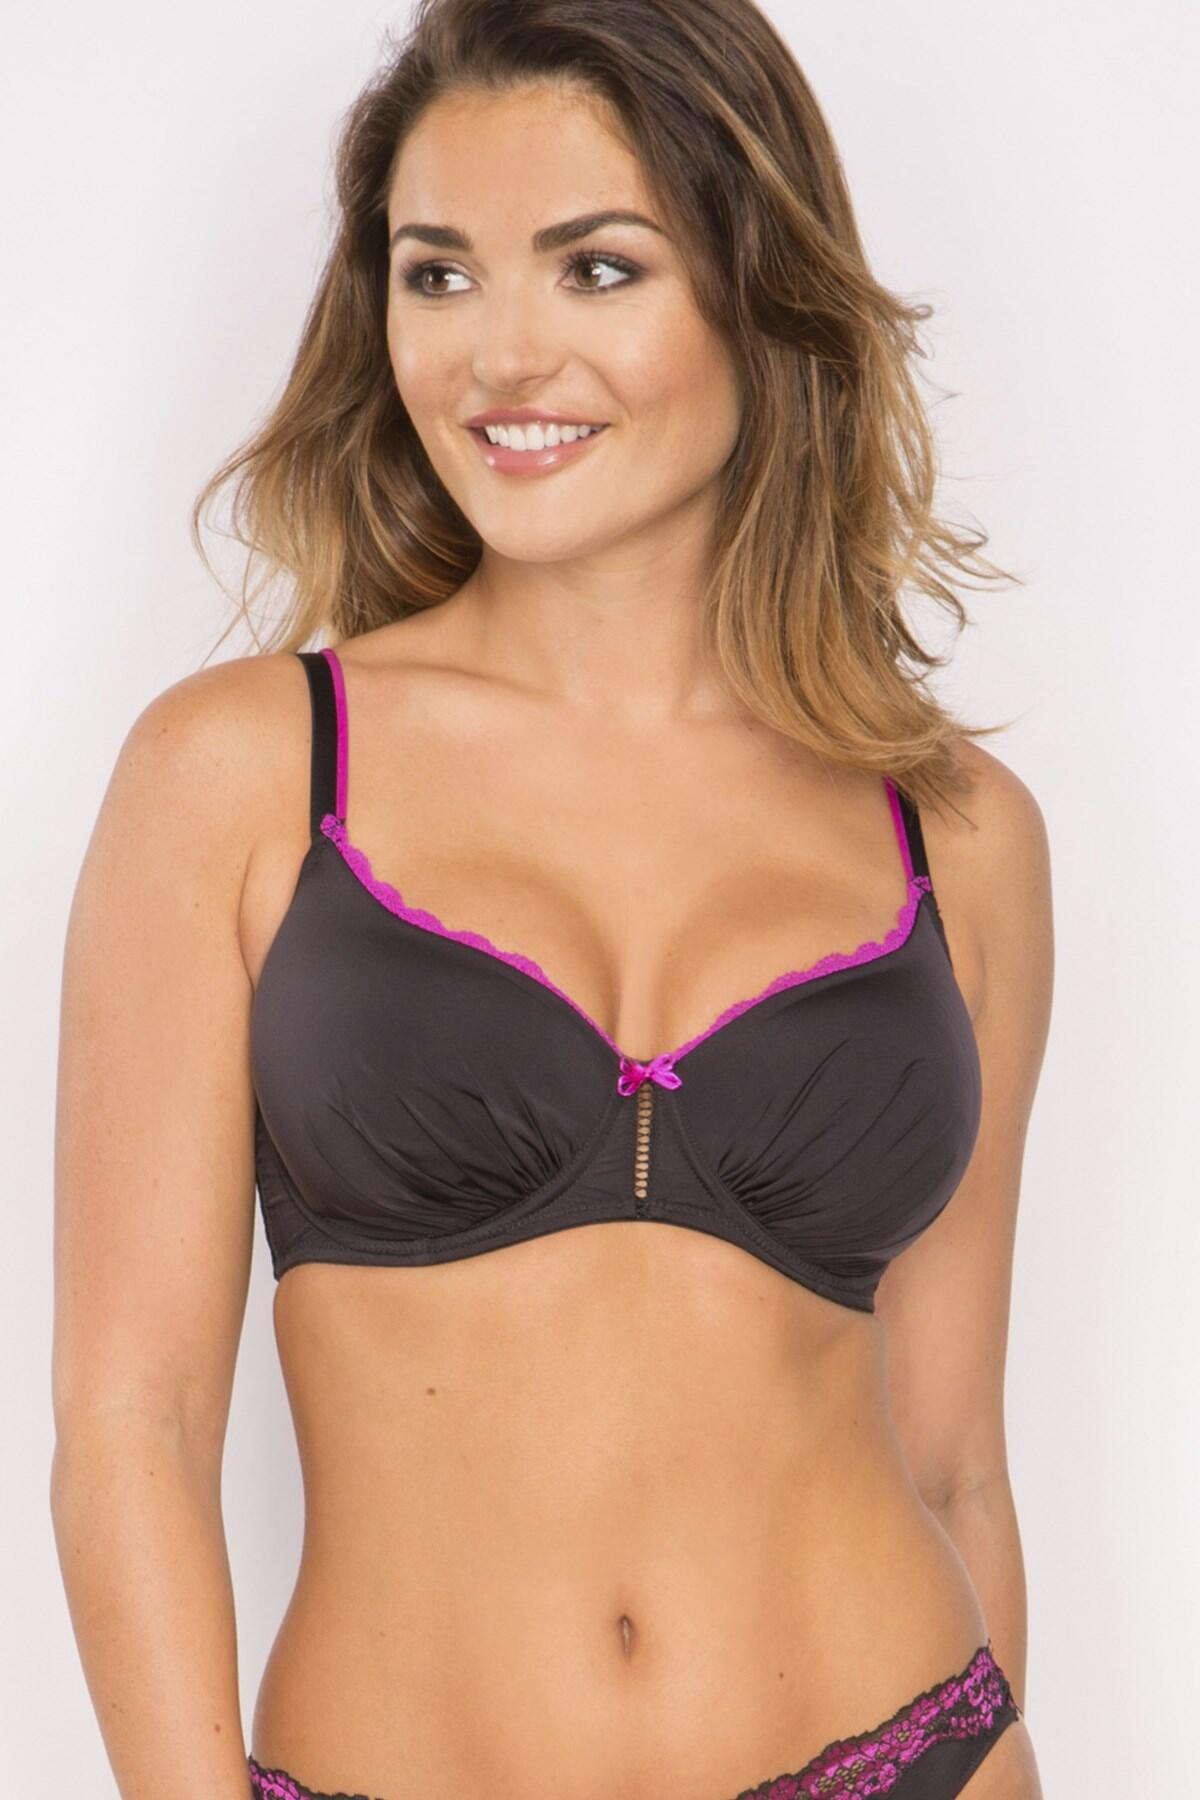 Fever T Shirt Bra - Black/Rose